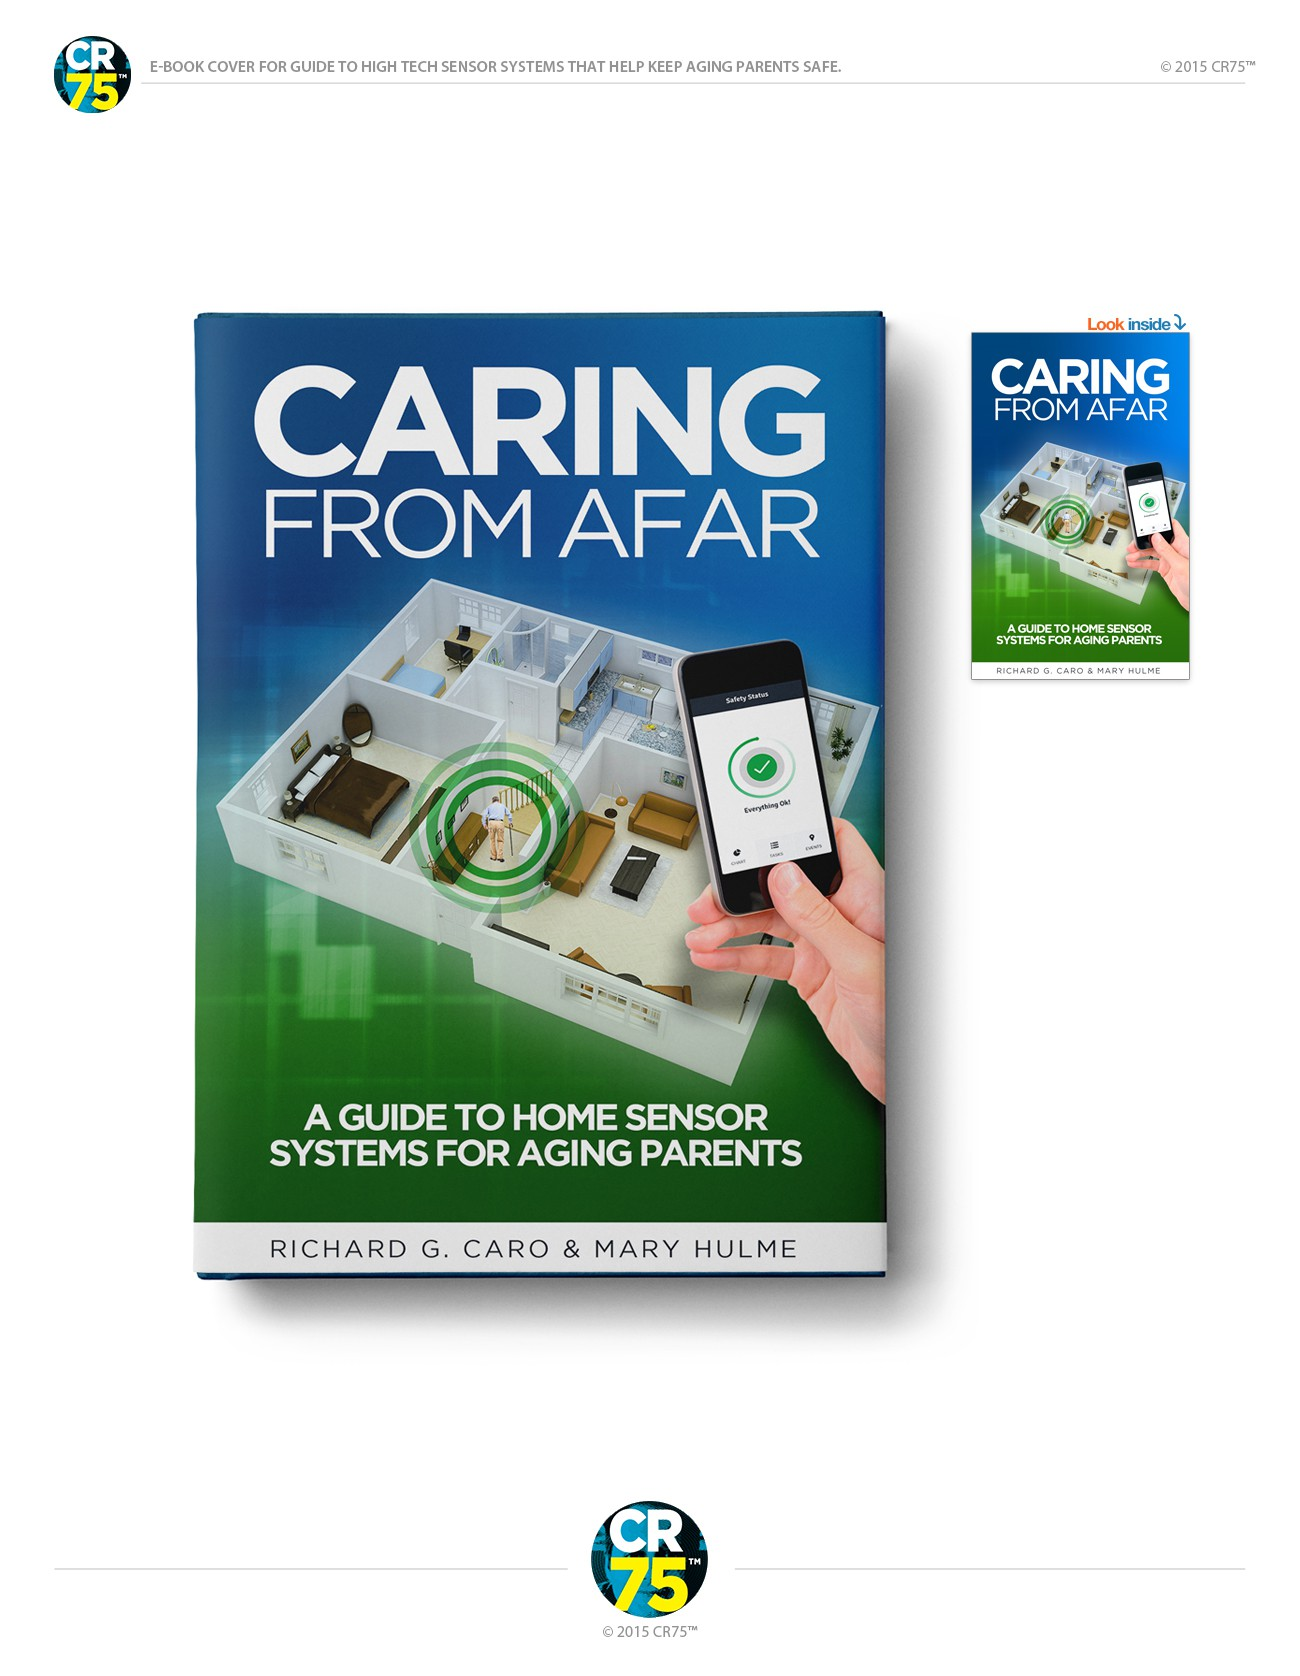 E-book cover for guide to high tech sensor systems that help keep aging parents safe.